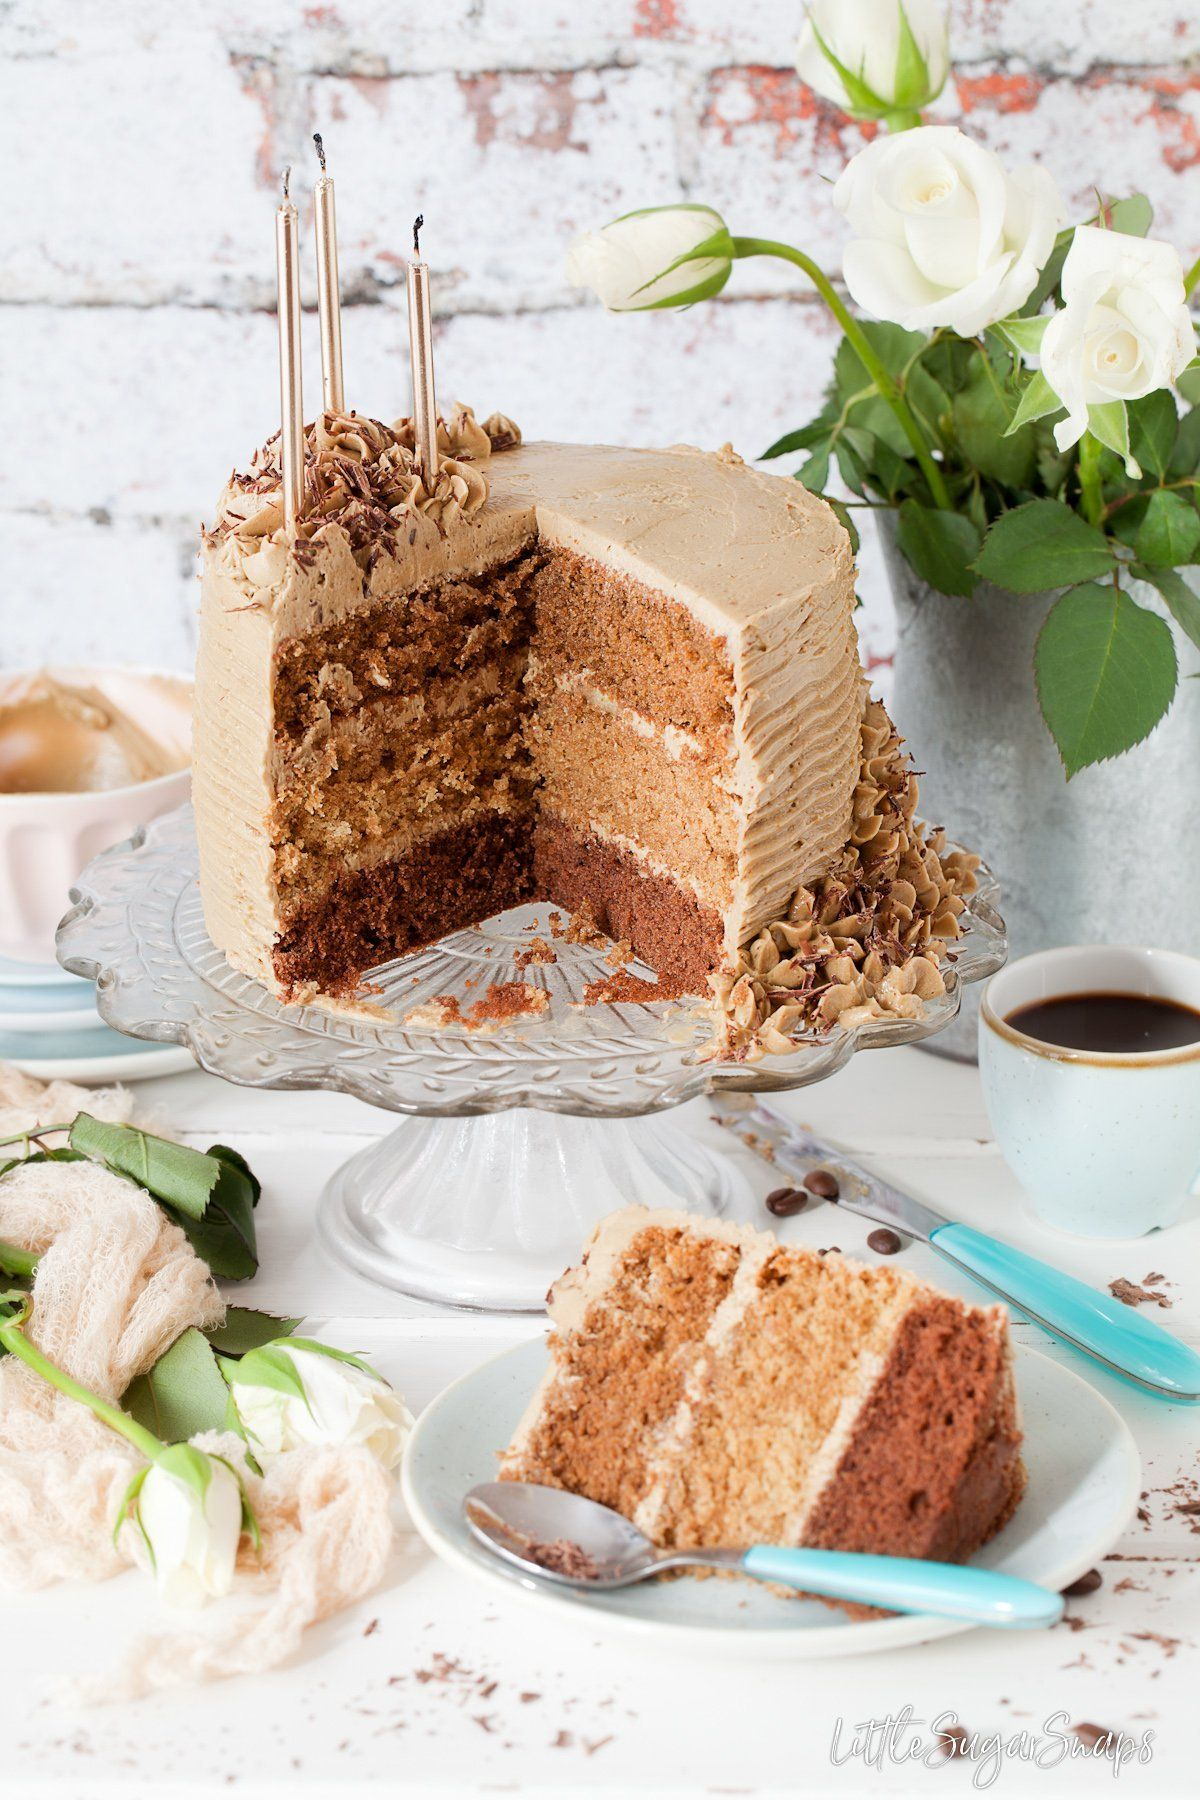 This Triple Coffee Layer Cake is based on the Latte, Mocha